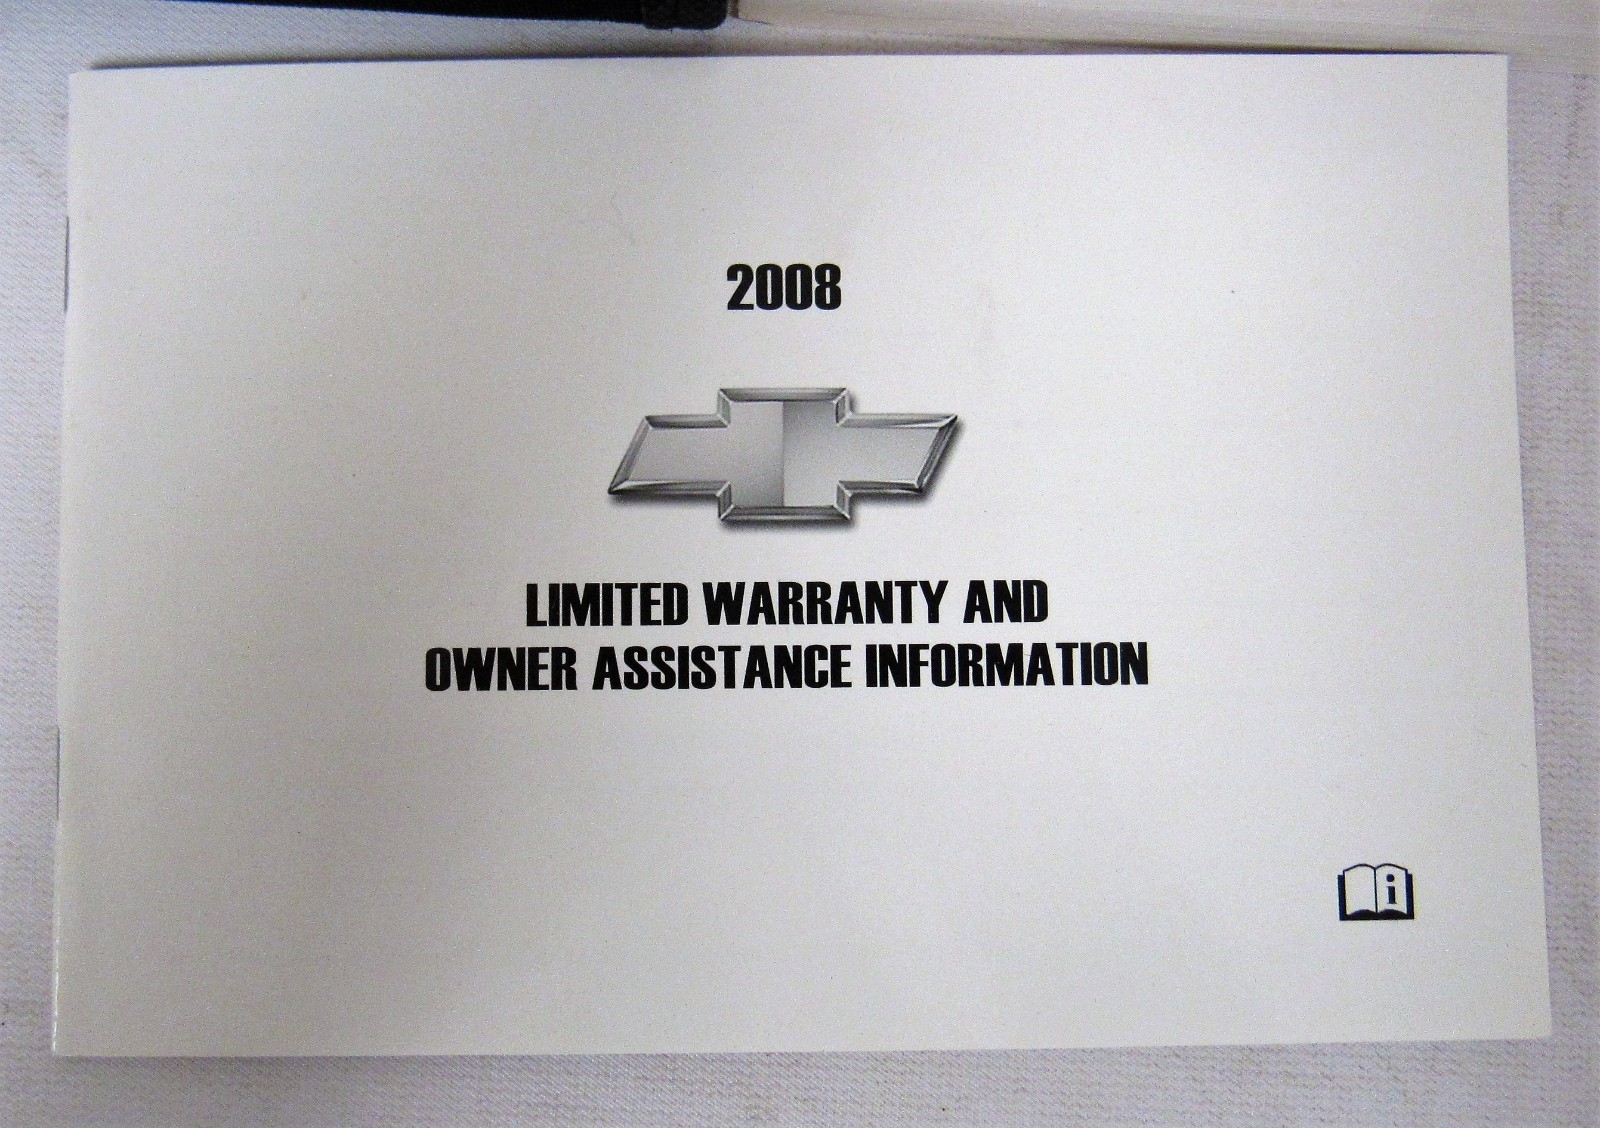 Avalanche 2007 chevrolet avalanche owners manual : 100+ [ 2008 Chevrolet Avalanche Owners Manual ] | Chevy Avalanche ...